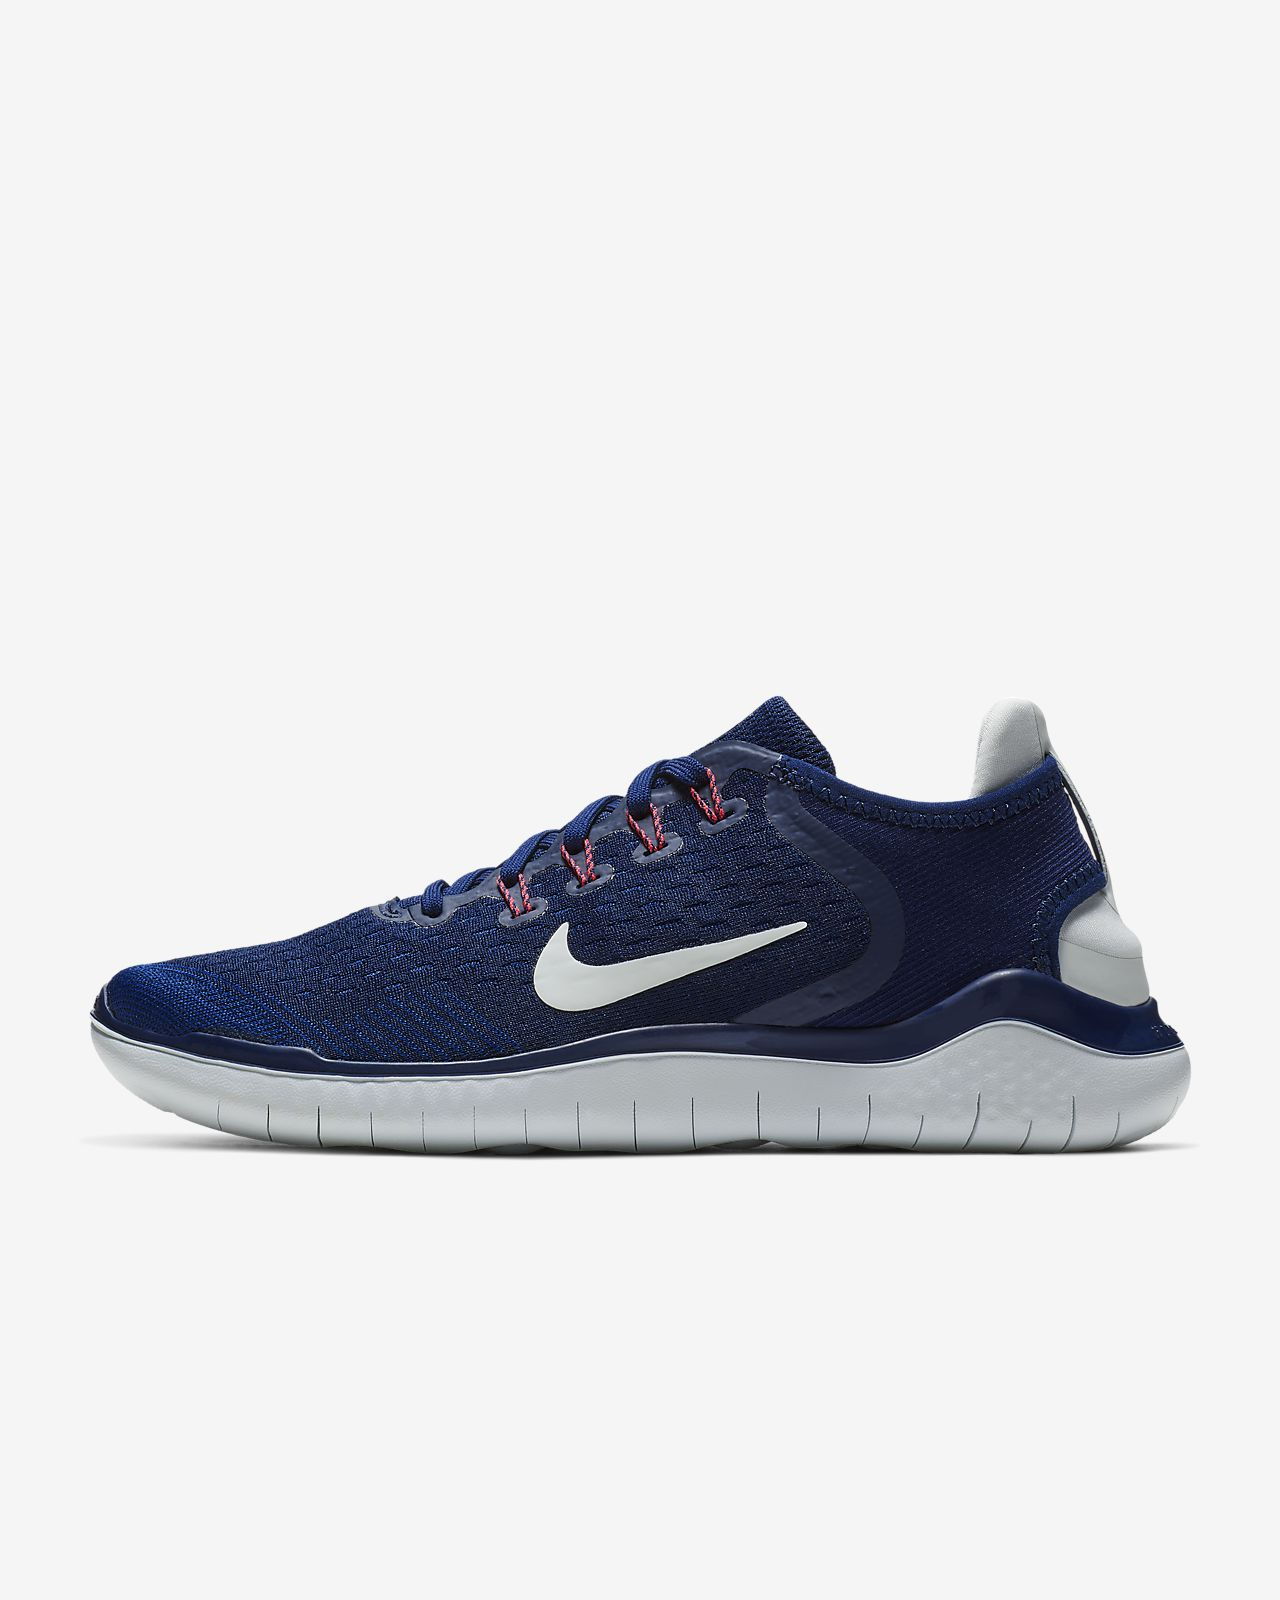 88b52d2f03d7 Low Resolution Nike Free RN 2018 Women s Running Shoe Nike Free RN 2018 Women s  Running Shoe